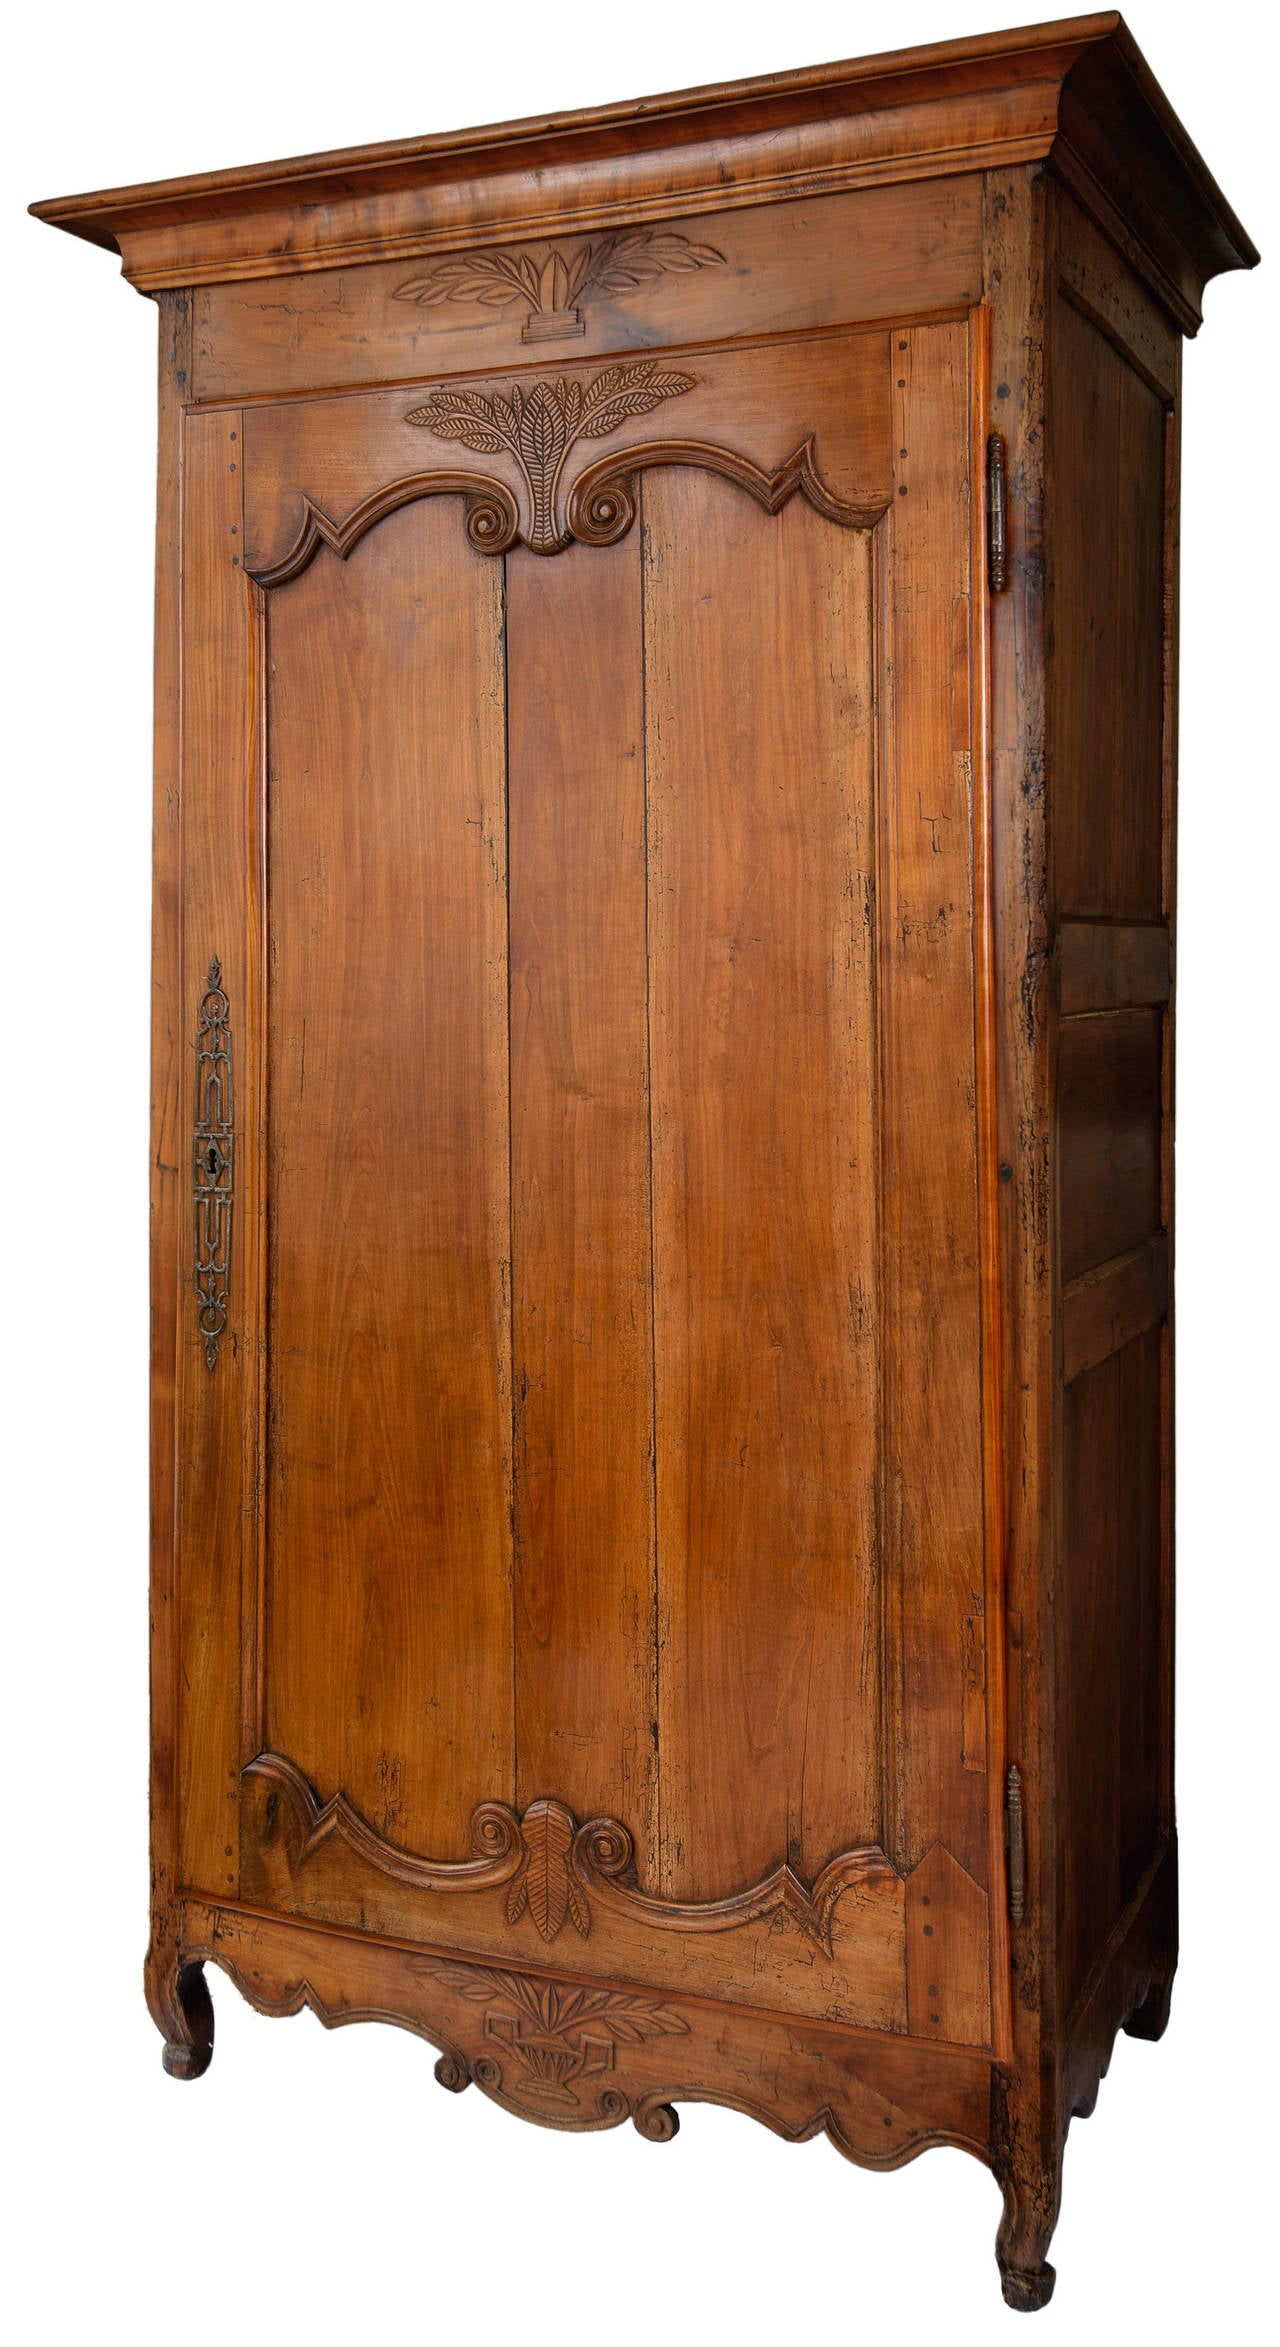 Louis XV walnut bonnetiere with original lock and decorative face plate, hinges and key. This handsome one door cabinet has a recessed panel with scrolls, wheat and cricket detail. The top and bottom apron have wheat and basket details. The shaped